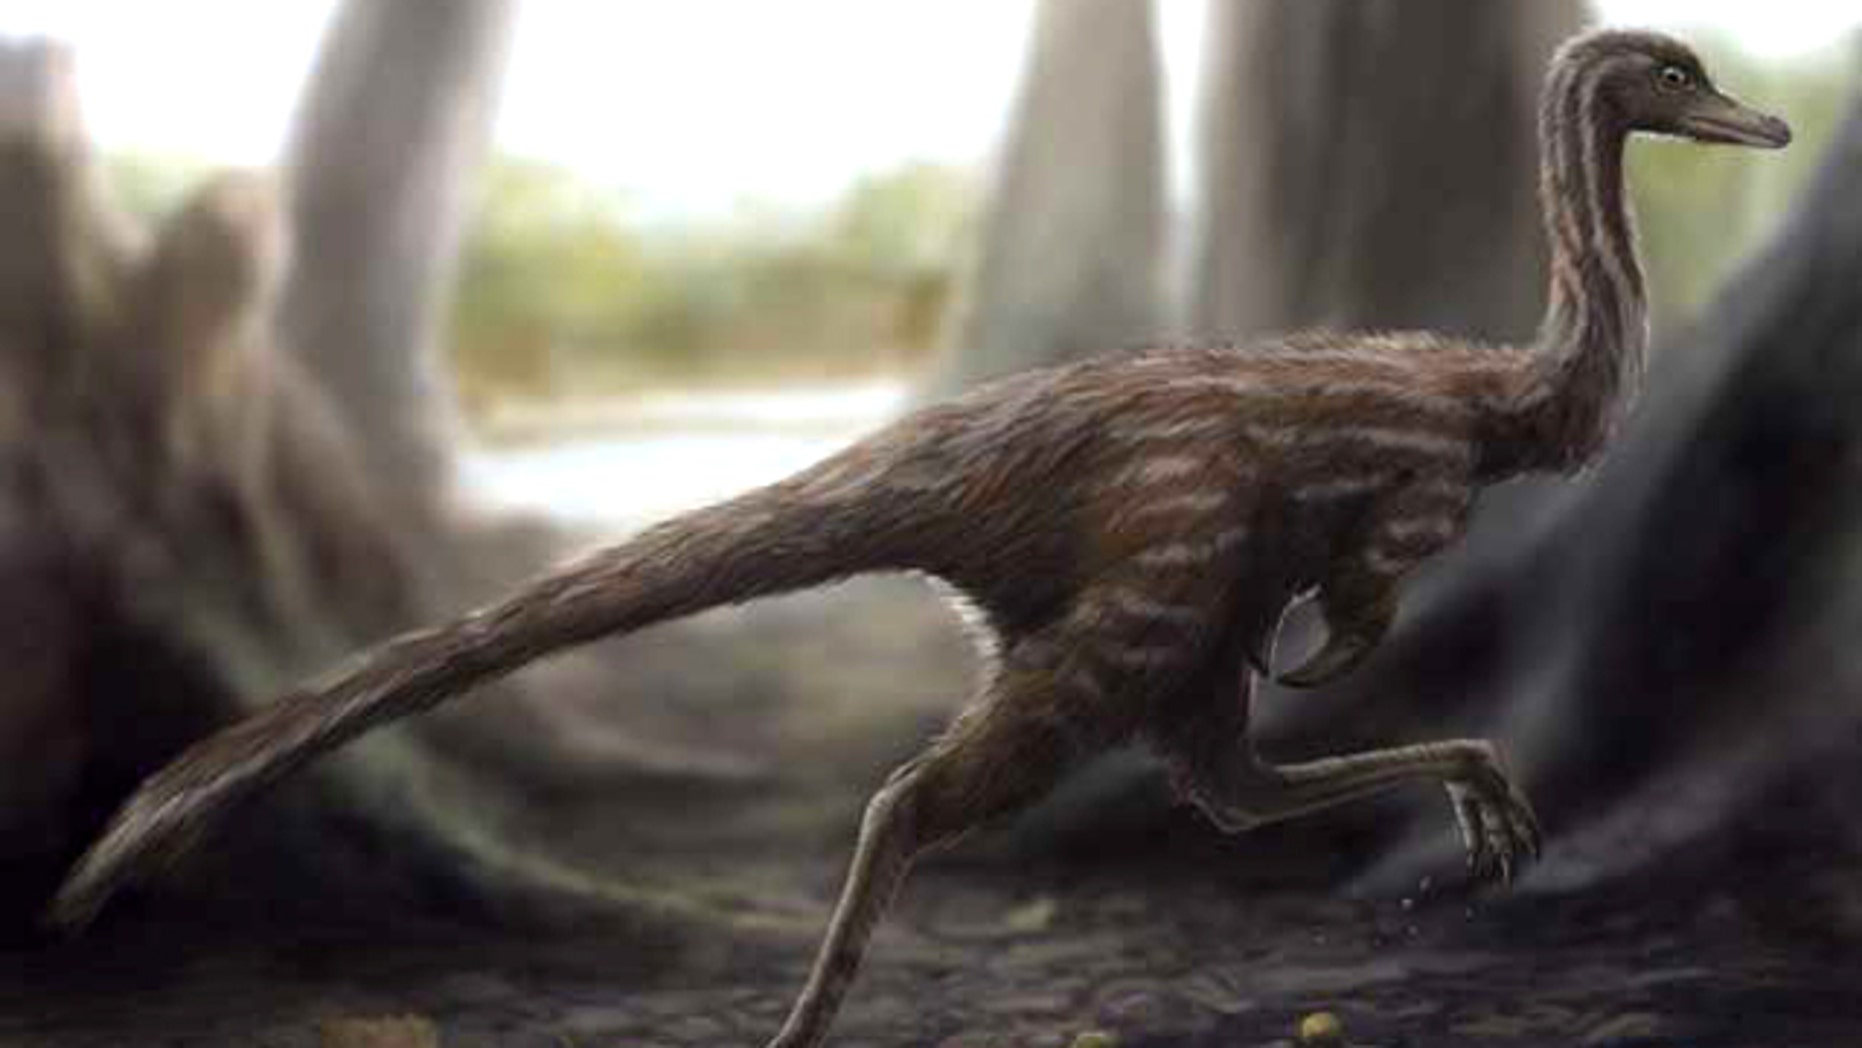 One of the smallest known dinosaurs, Xixianykus zhangi (shown here in a reconstruction) was built for quick running. A shorter upper leg relative to its lower leg helped the dinosaur carry its weight more efficiently.